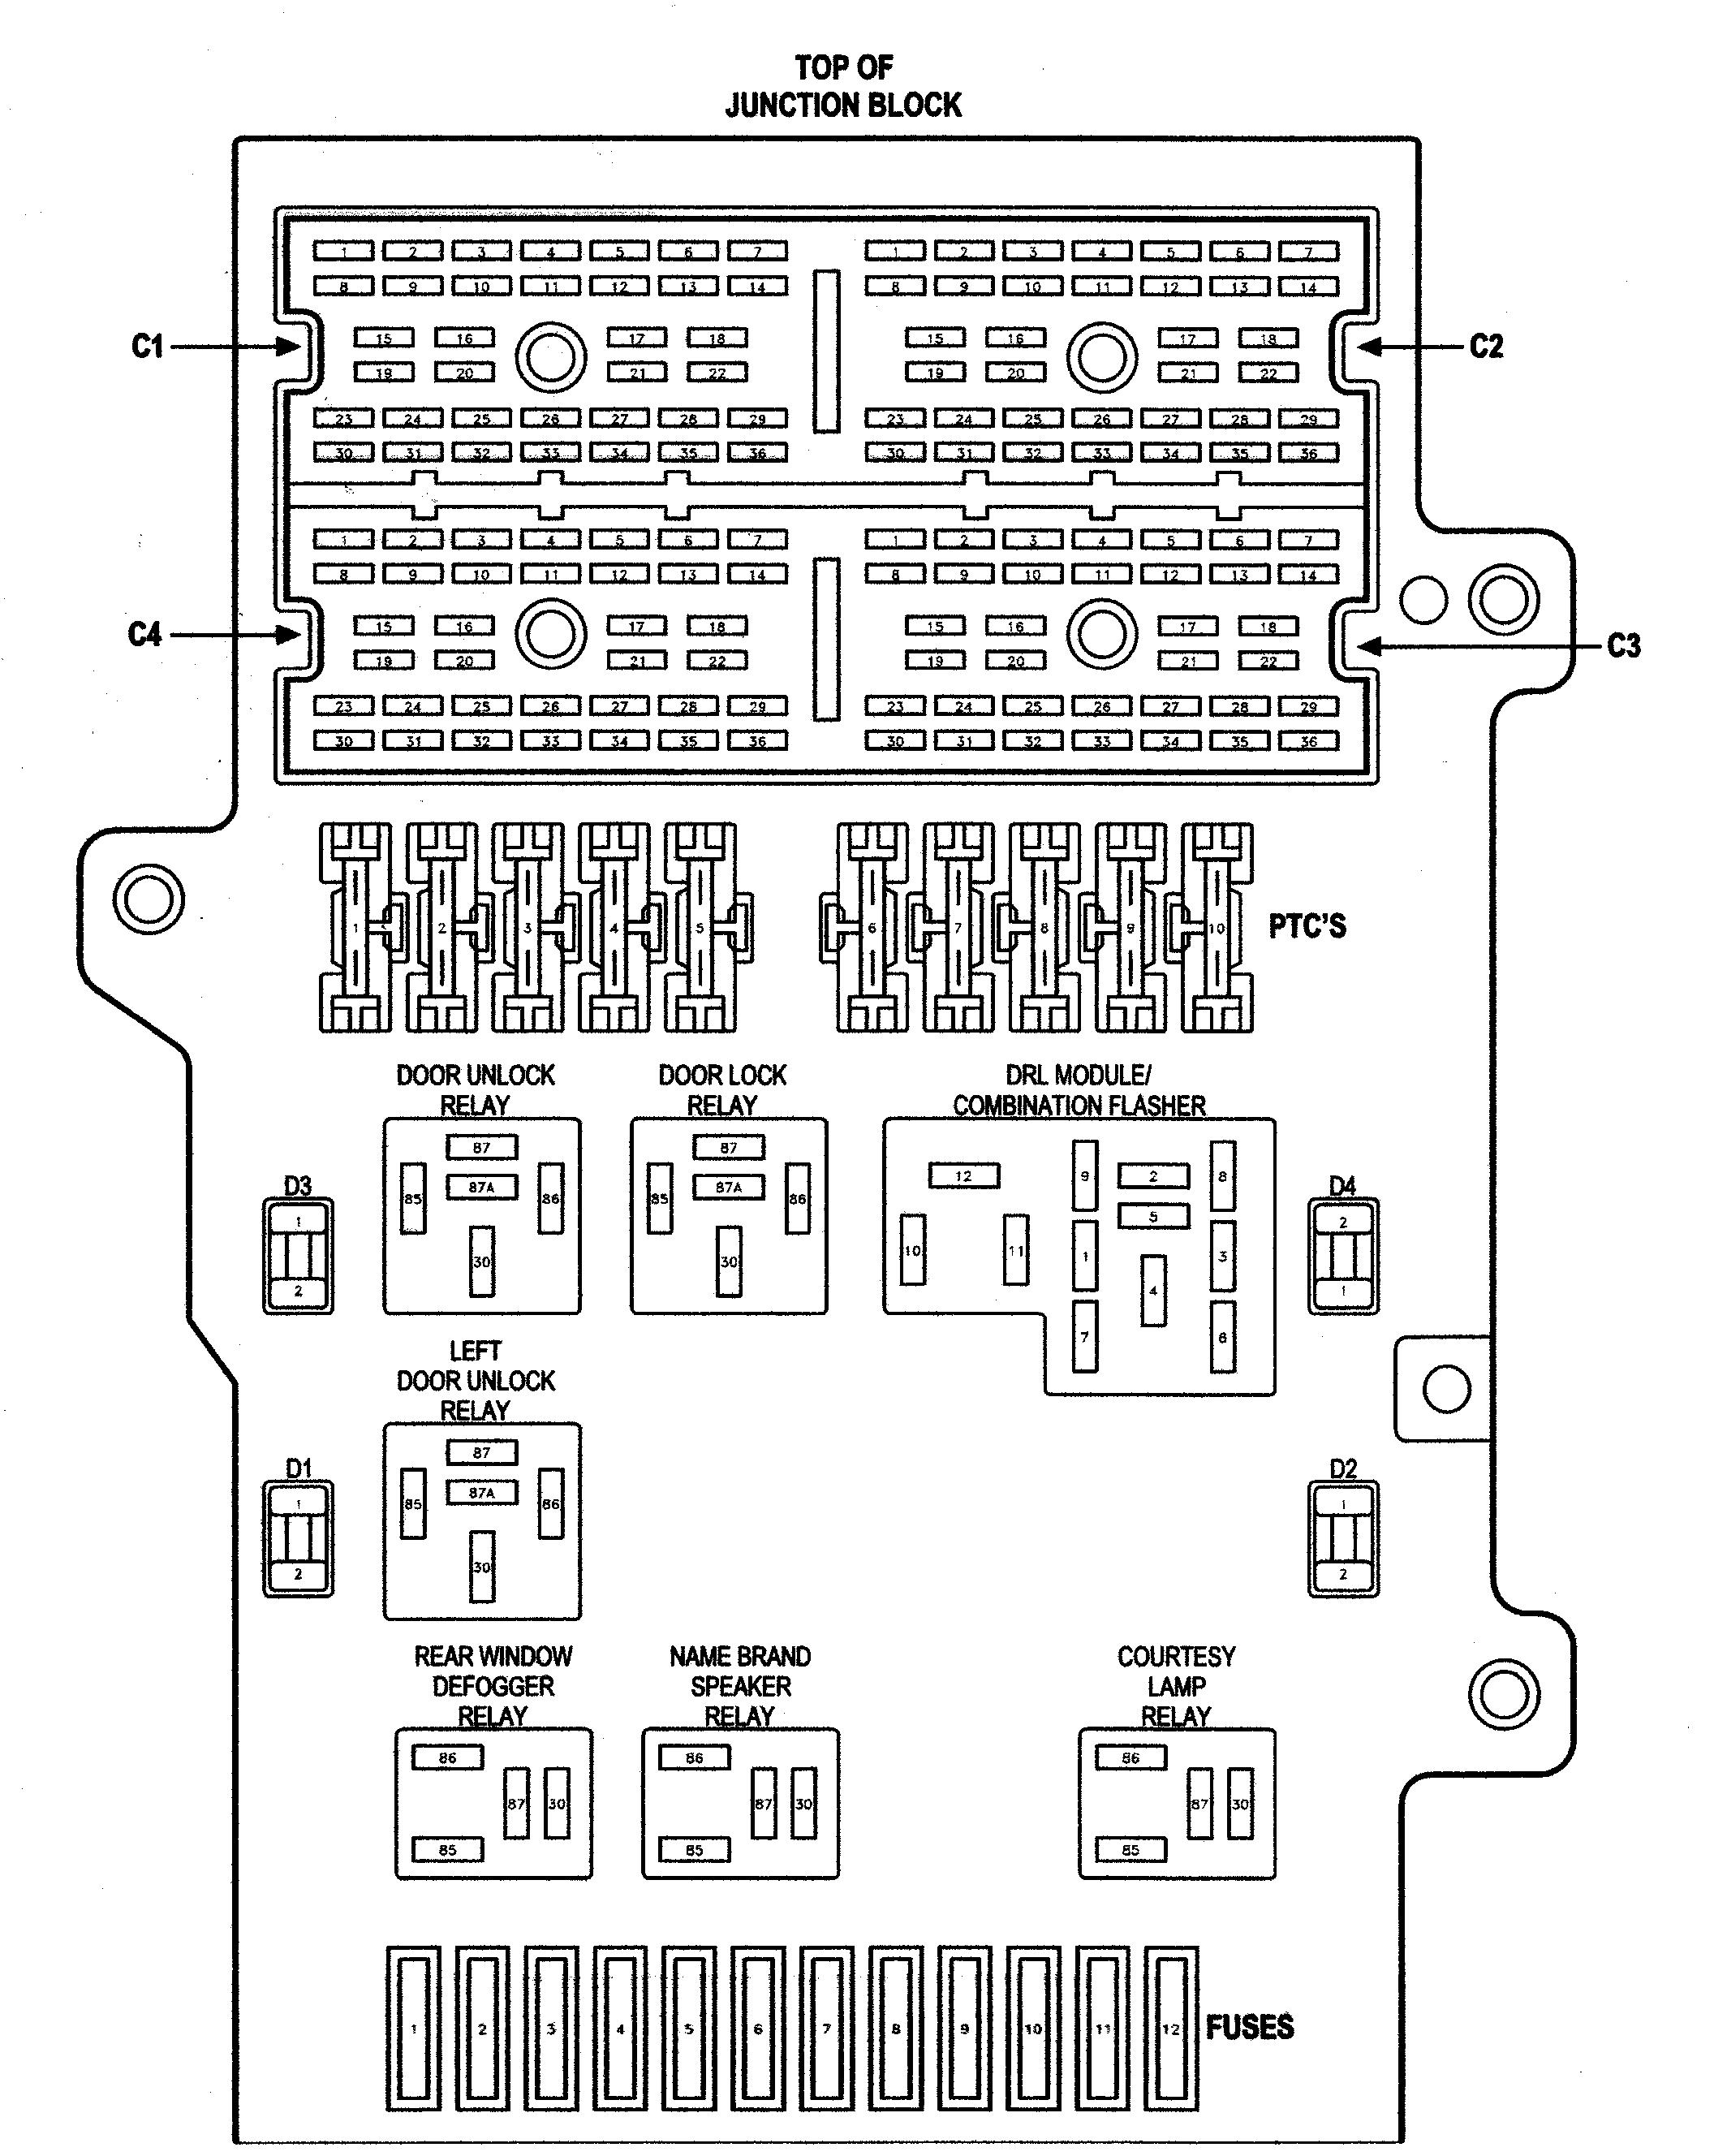 hight resolution of 2007 chrysler town and country fuse box diagram wiring diagram2006 chrysler town country fuse box diagram